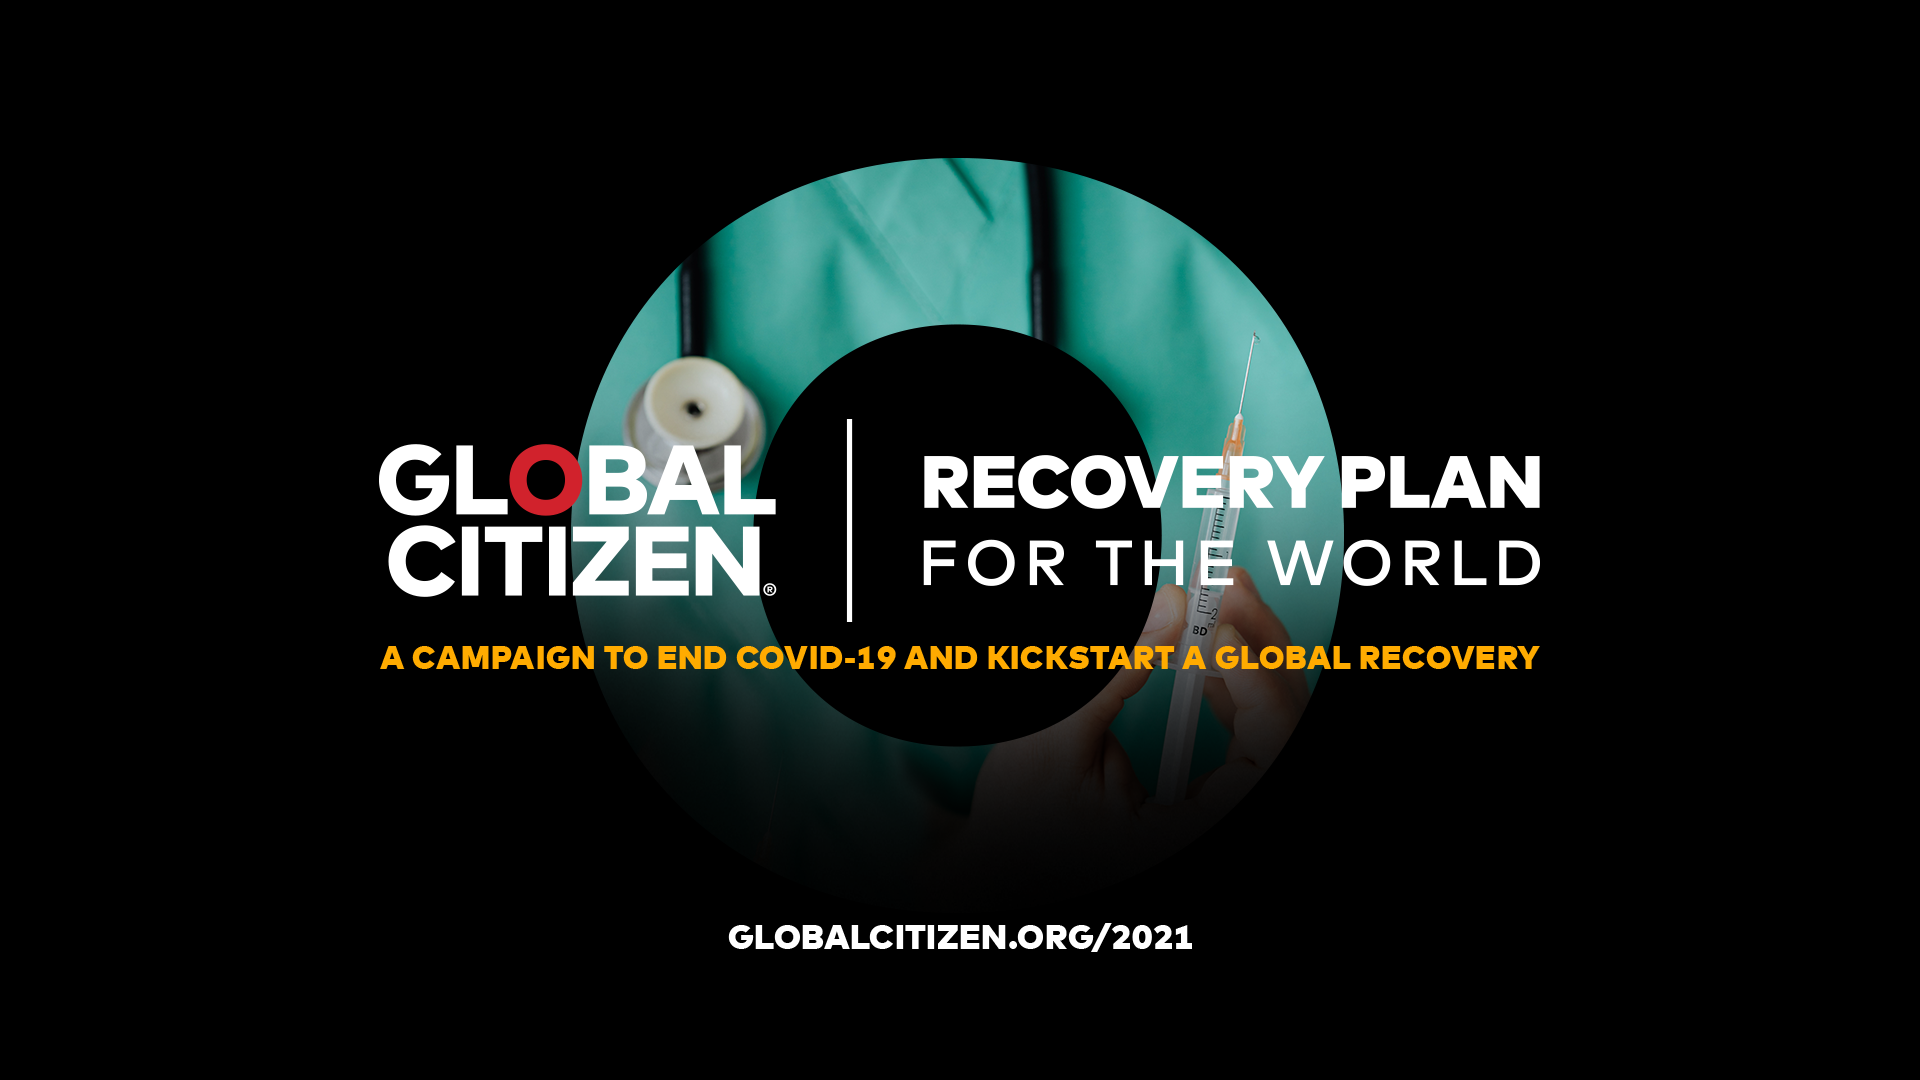 Billie Eilish Teams Up With Global Citizen For #WorldRecoveryPlan, A Global Initiative